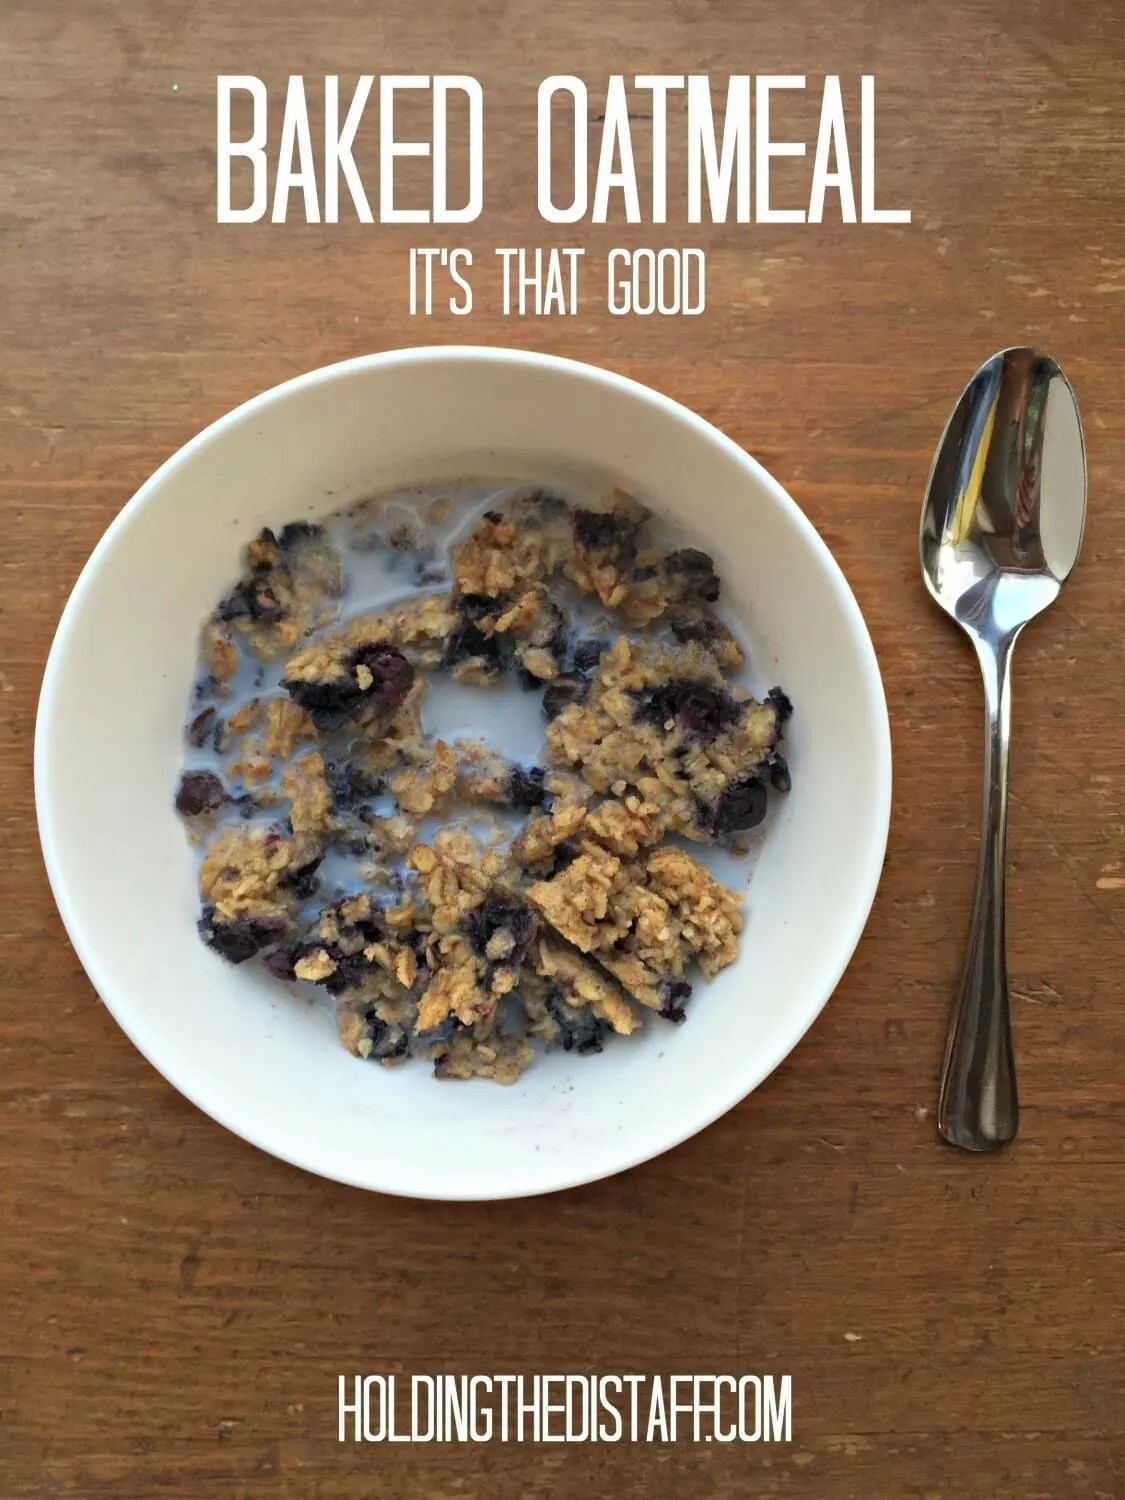 Baked Oatmeal: this is a family favorite recipe that you can prep the night before. Add the toppings of your choice. Easy, delicious and nutritious breakfast!